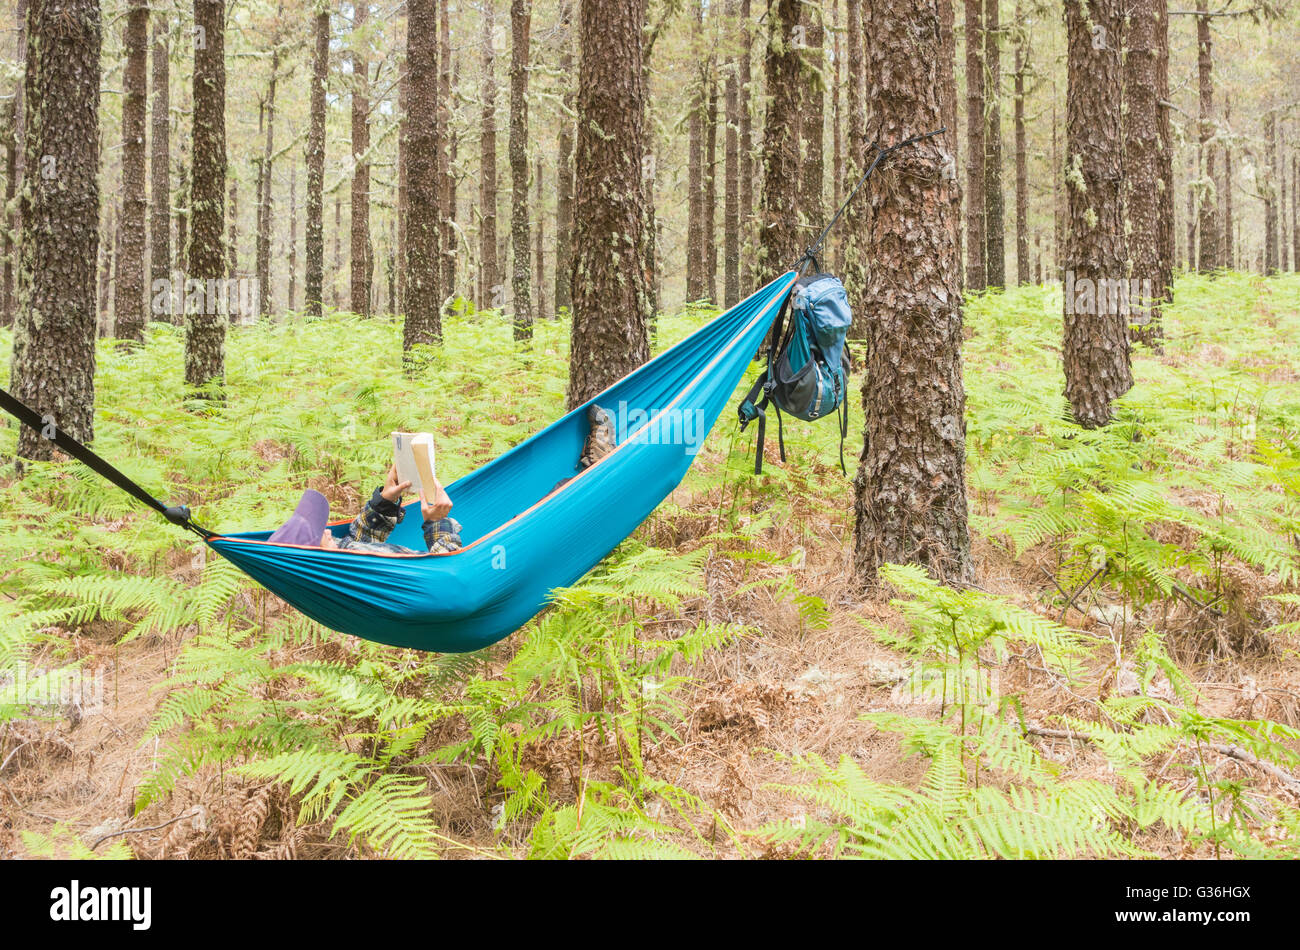 Mature female hiker reading a book in hammock in pine forest. Possible uses: mature backpacker/retirement/adventure/savings... - Stock Image